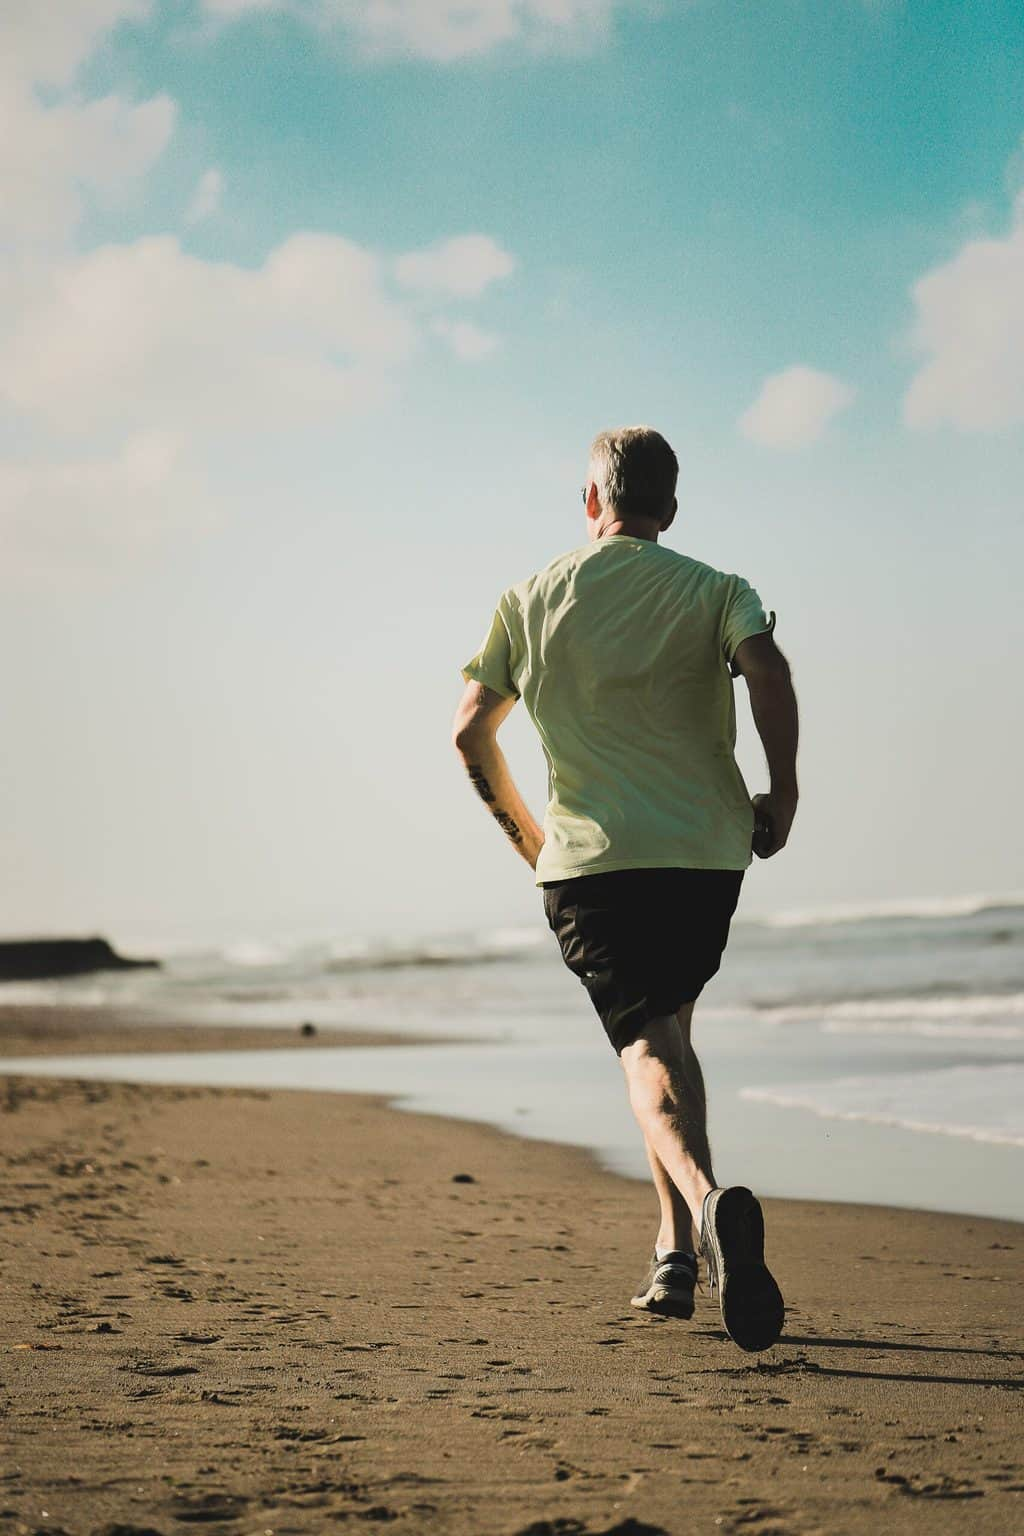 An old man jogging on the beach